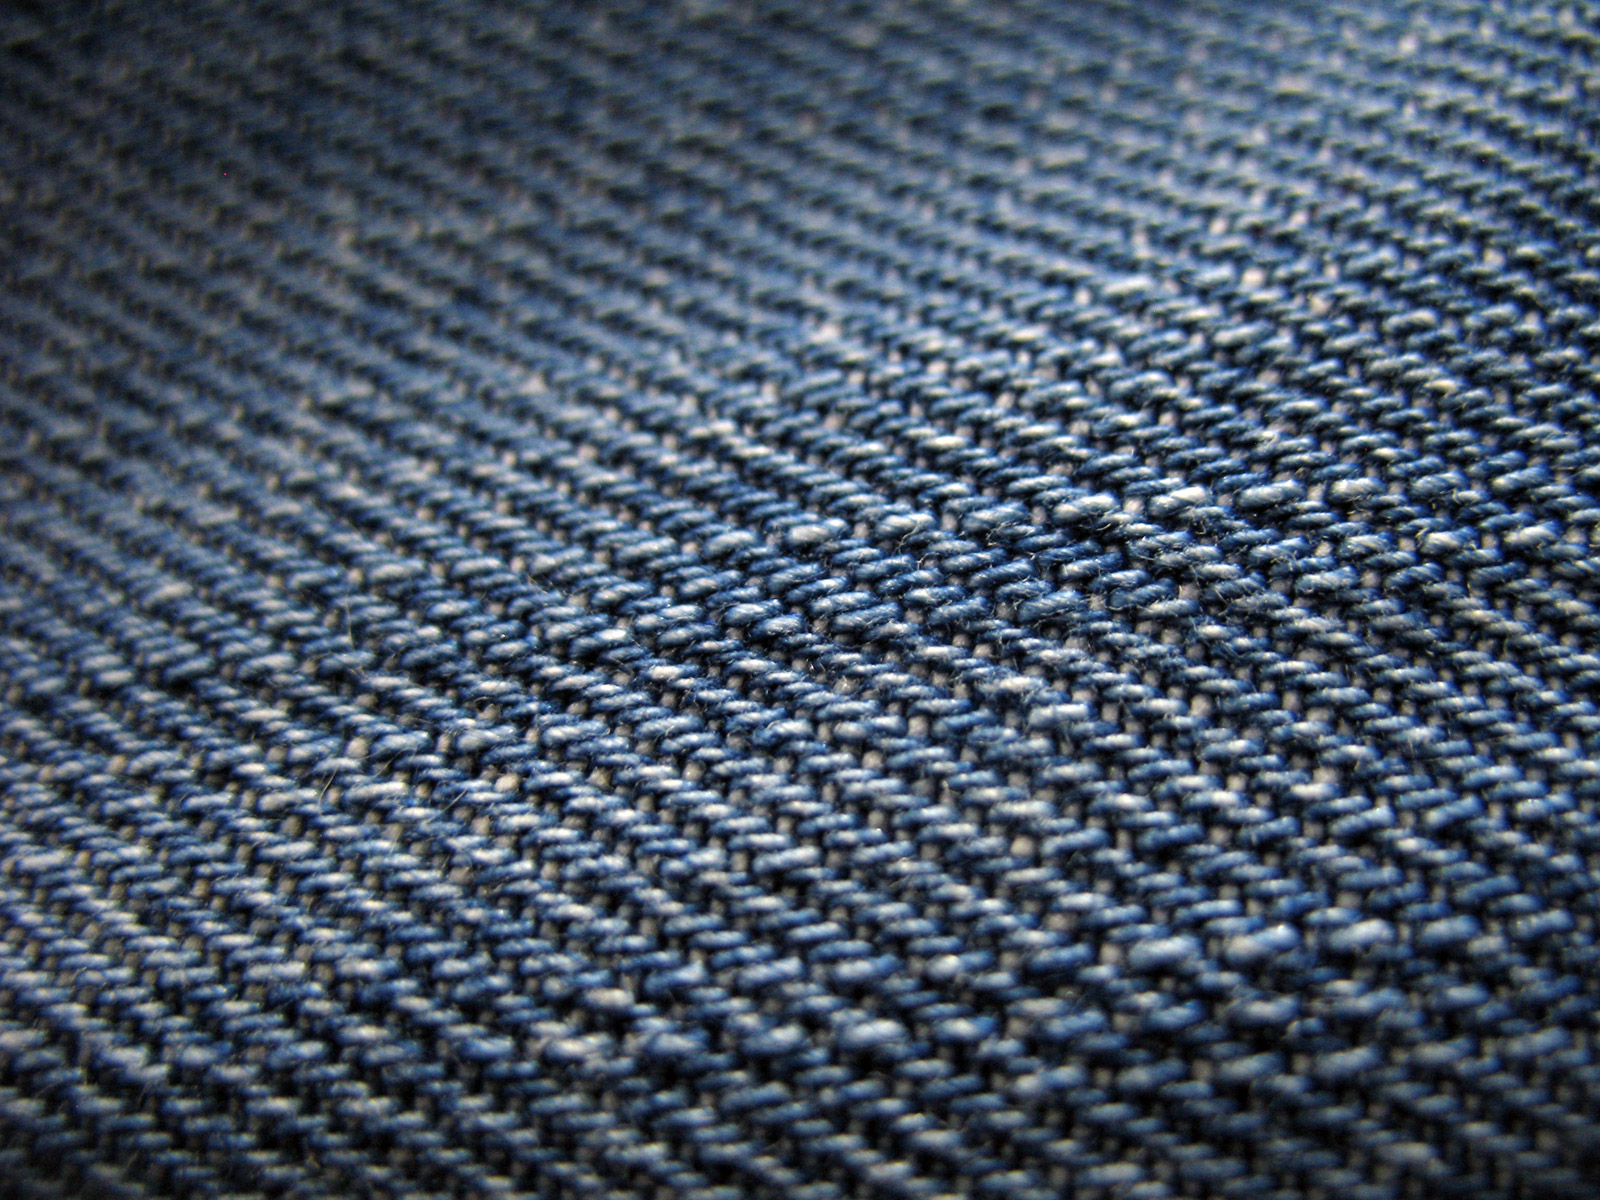 Texture jeans cloth download photo background jeans  jeans texture background